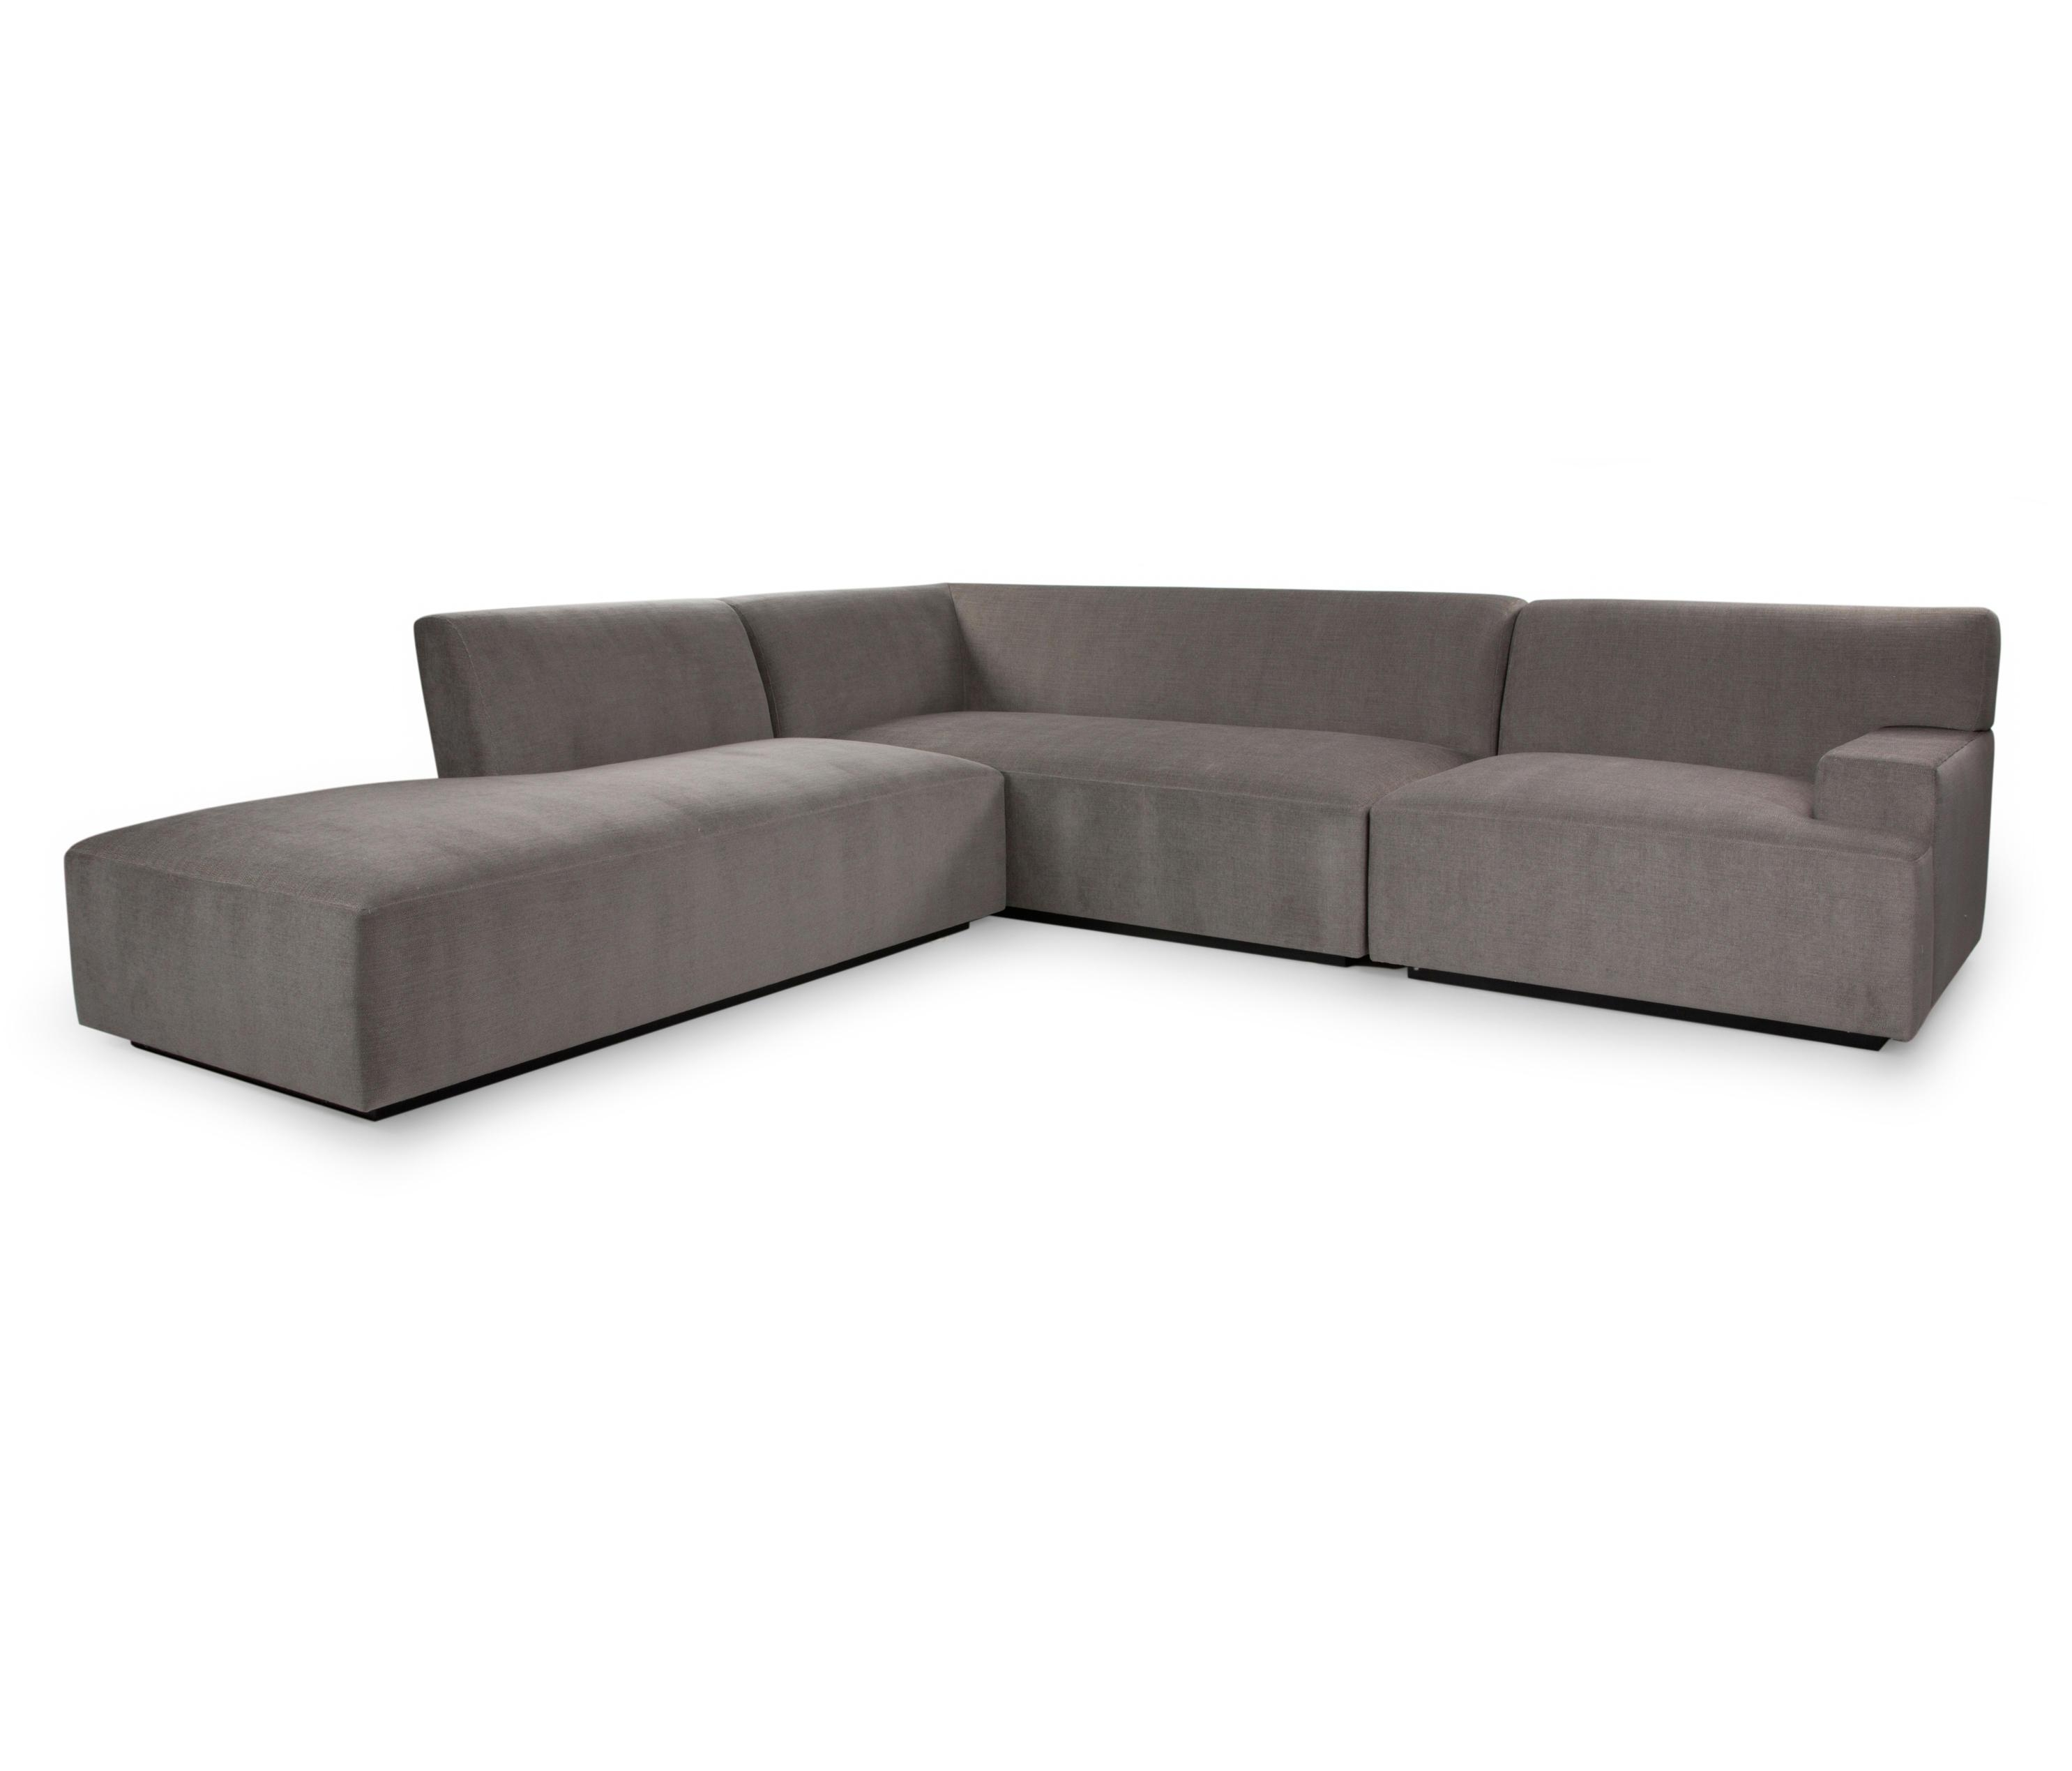 Modular Sofas – Research And Select The Sofa & Chair Company Ltd Regarding Modular Sofas (View 11 of 20)